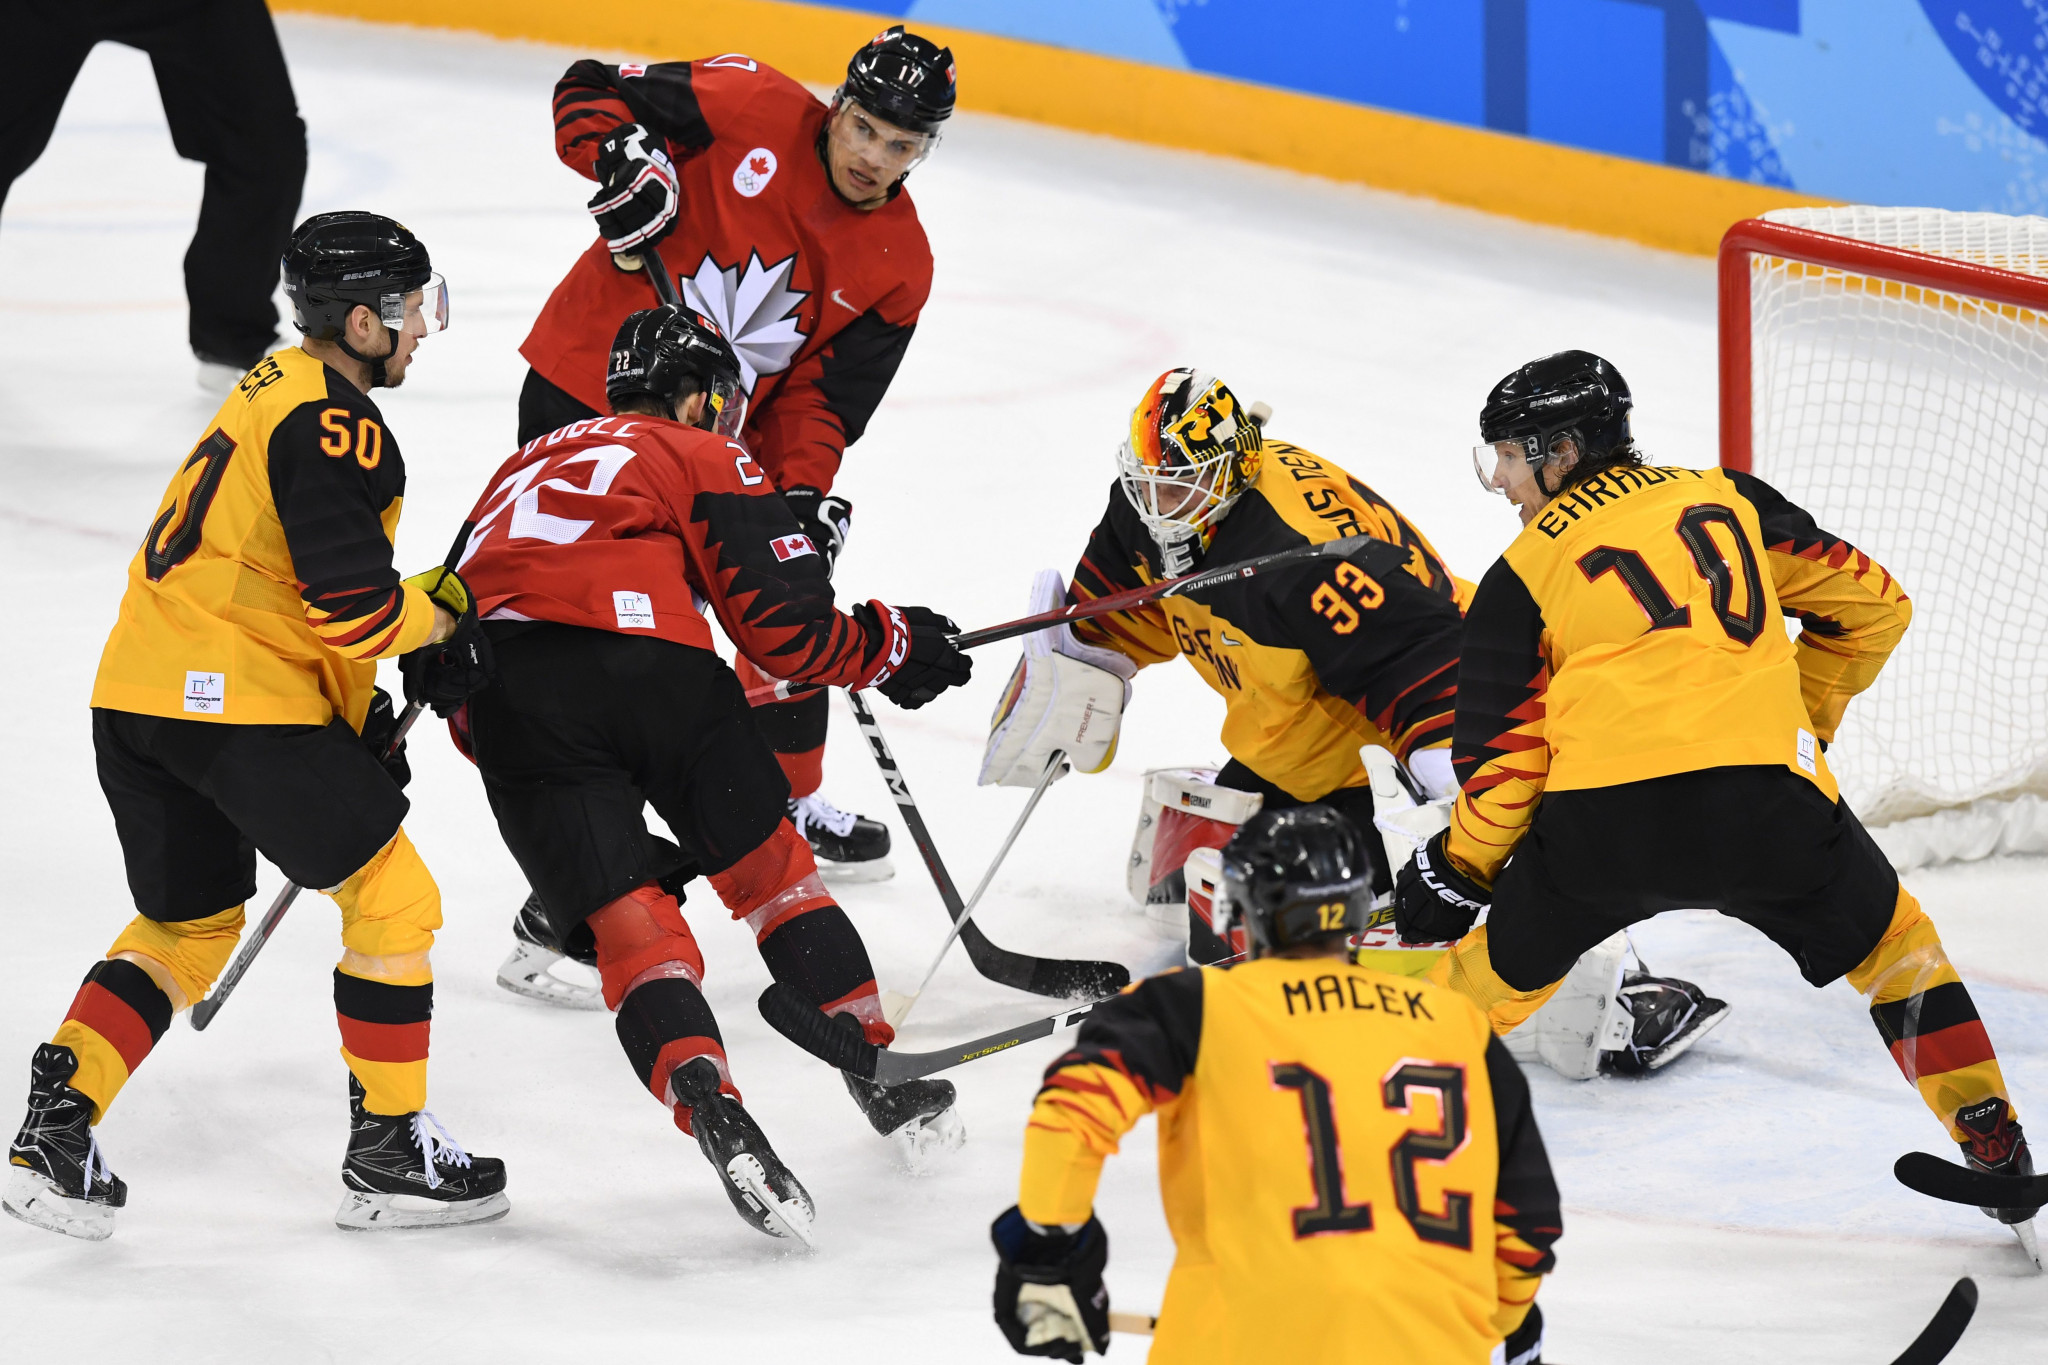 The NHL did not sanction its players to appear at the Pyeongchang 2018 Winter Olympics ©Getty Images